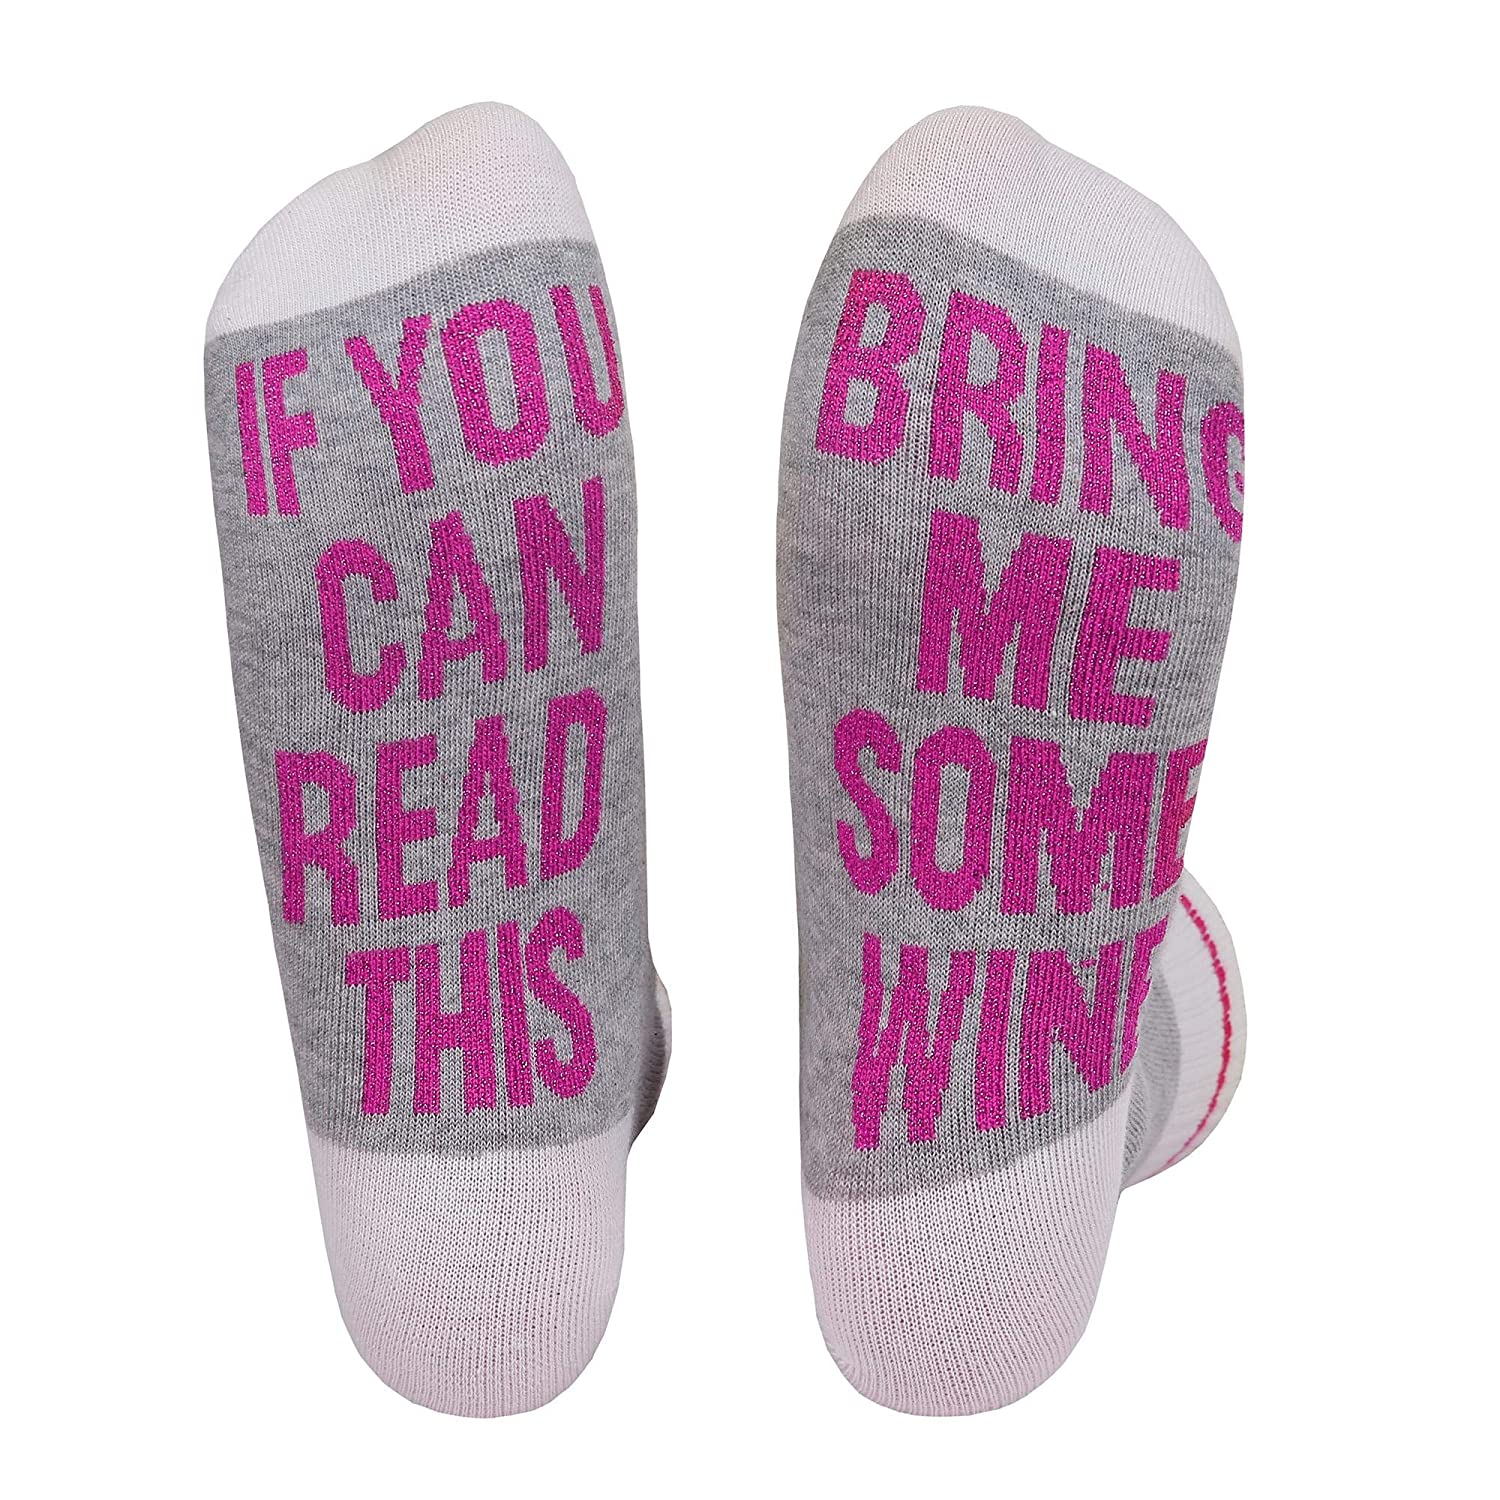 Women's Bring Me A Class of Wine Socks Novelty Funny Funky Soft Saying Tube Crew Socks